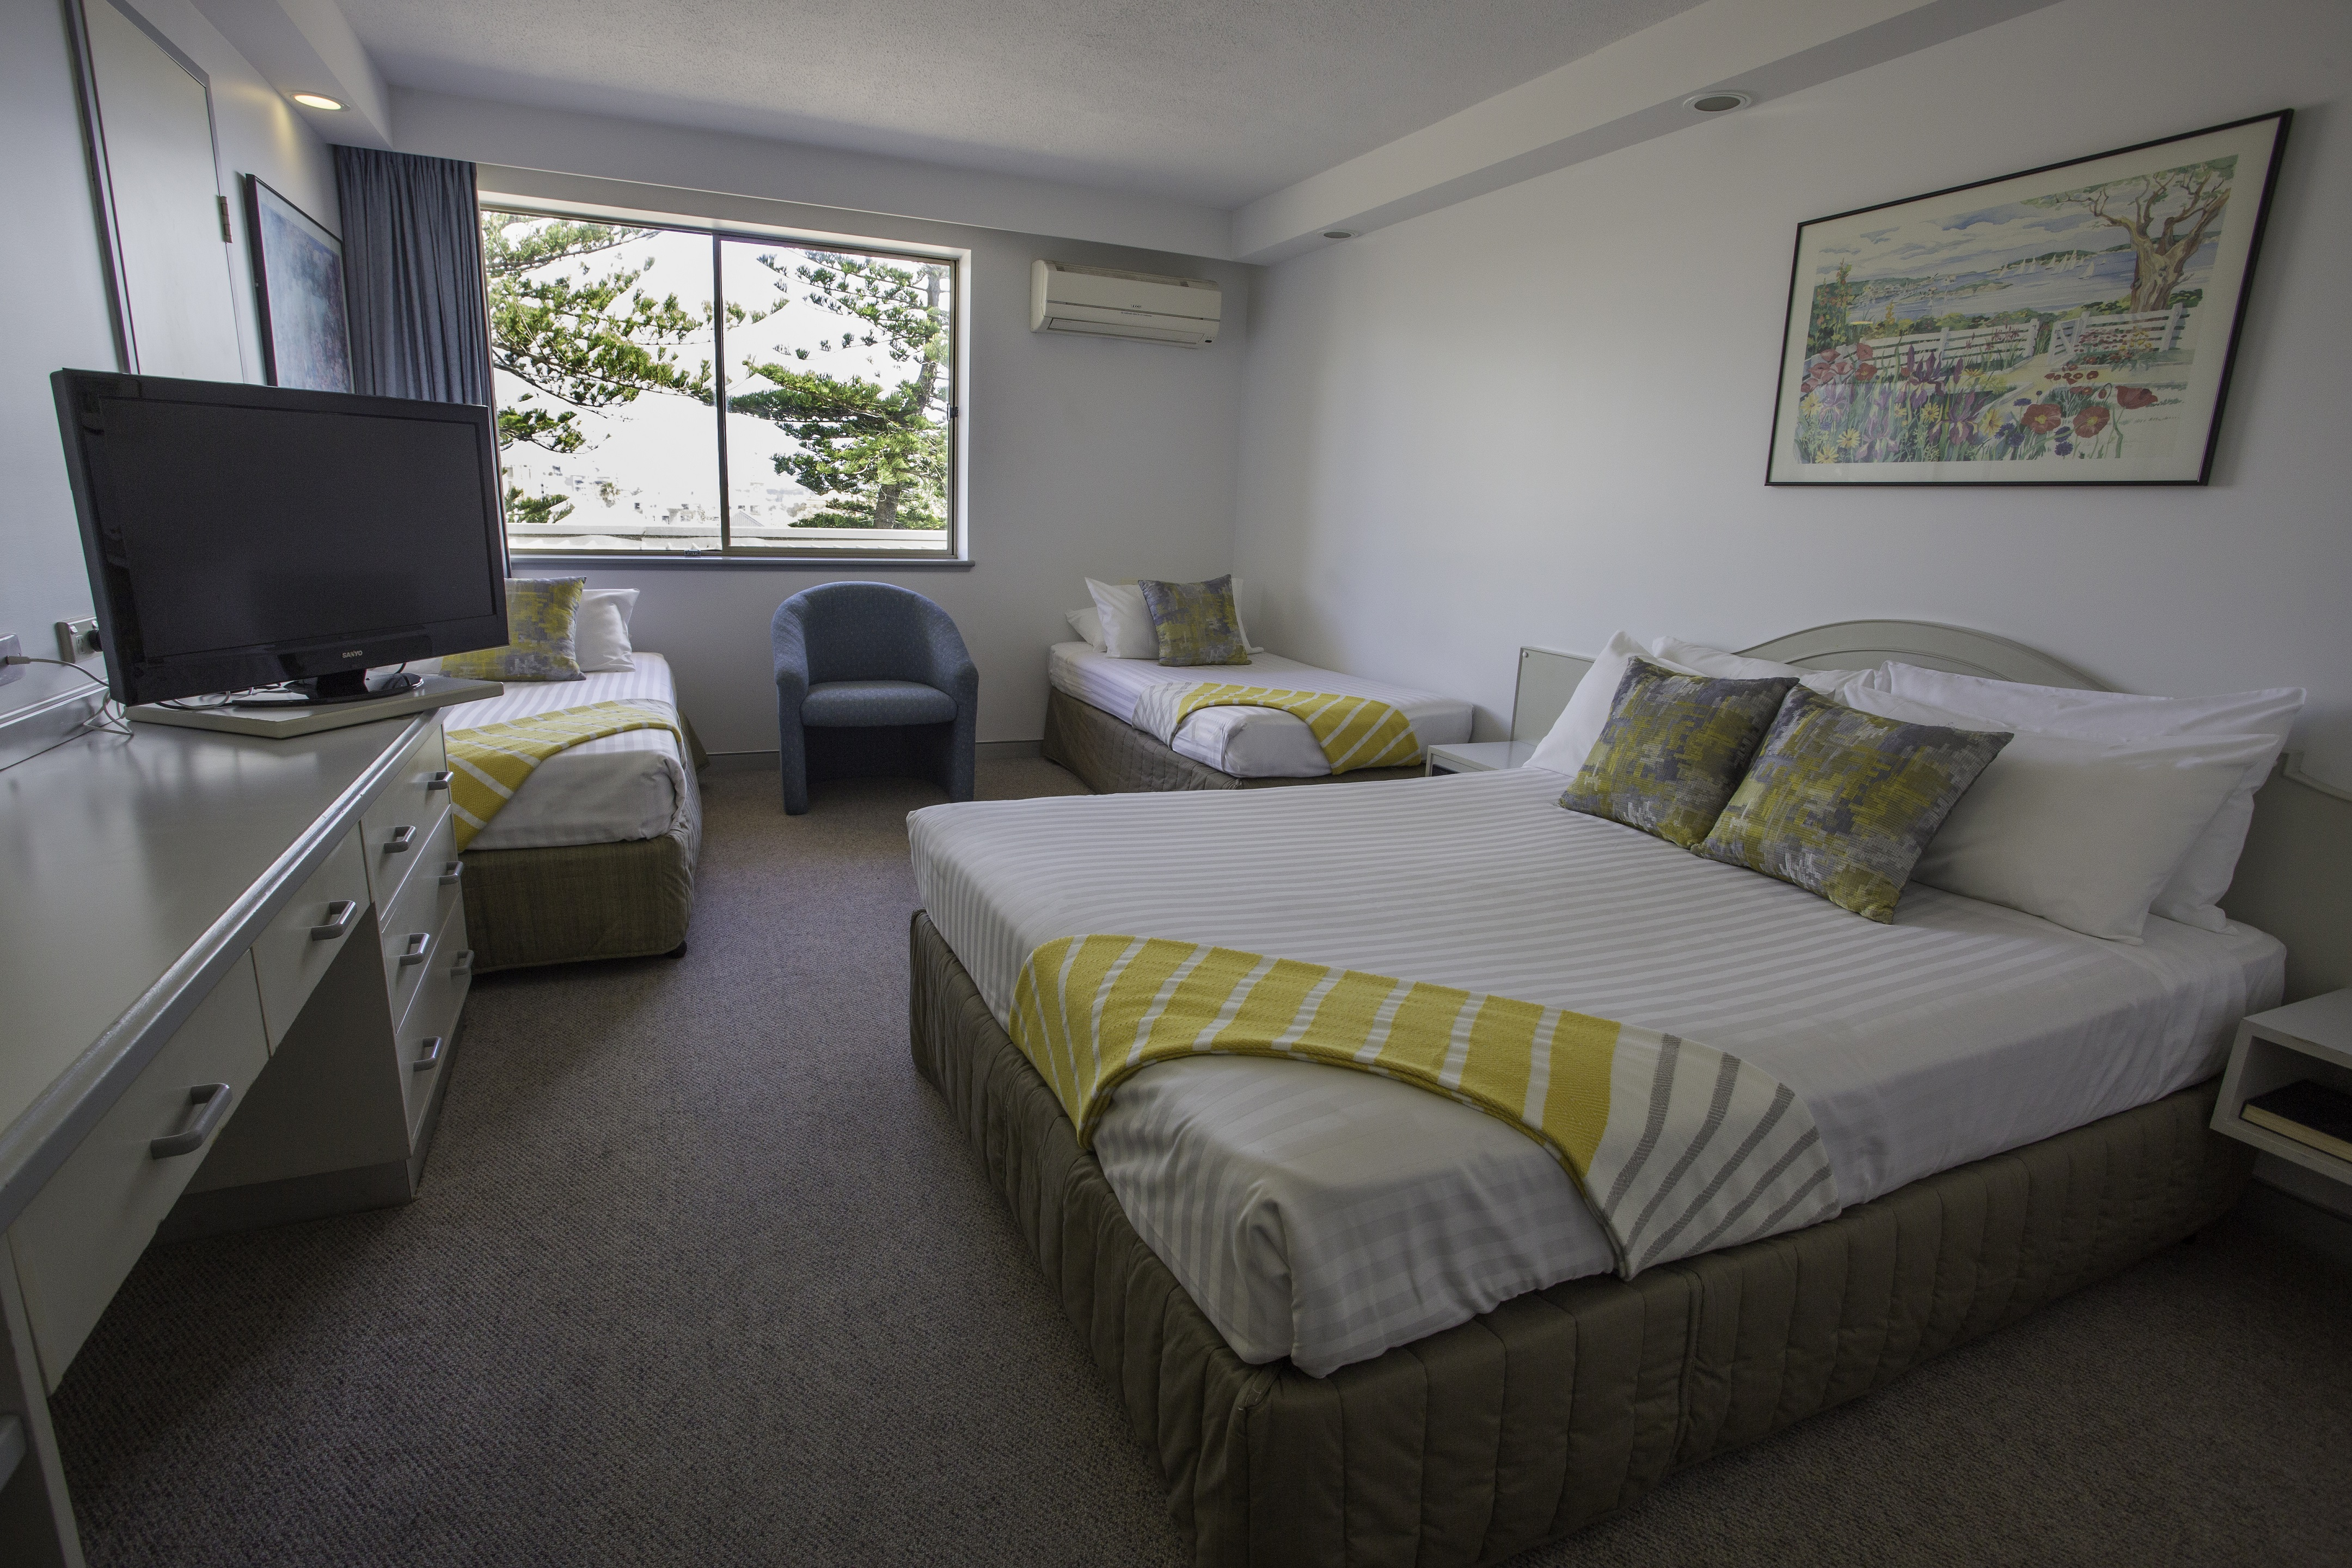 accommodation newcastle newcastle beach hotel home. Black Bedroom Furniture Sets. Home Design Ideas